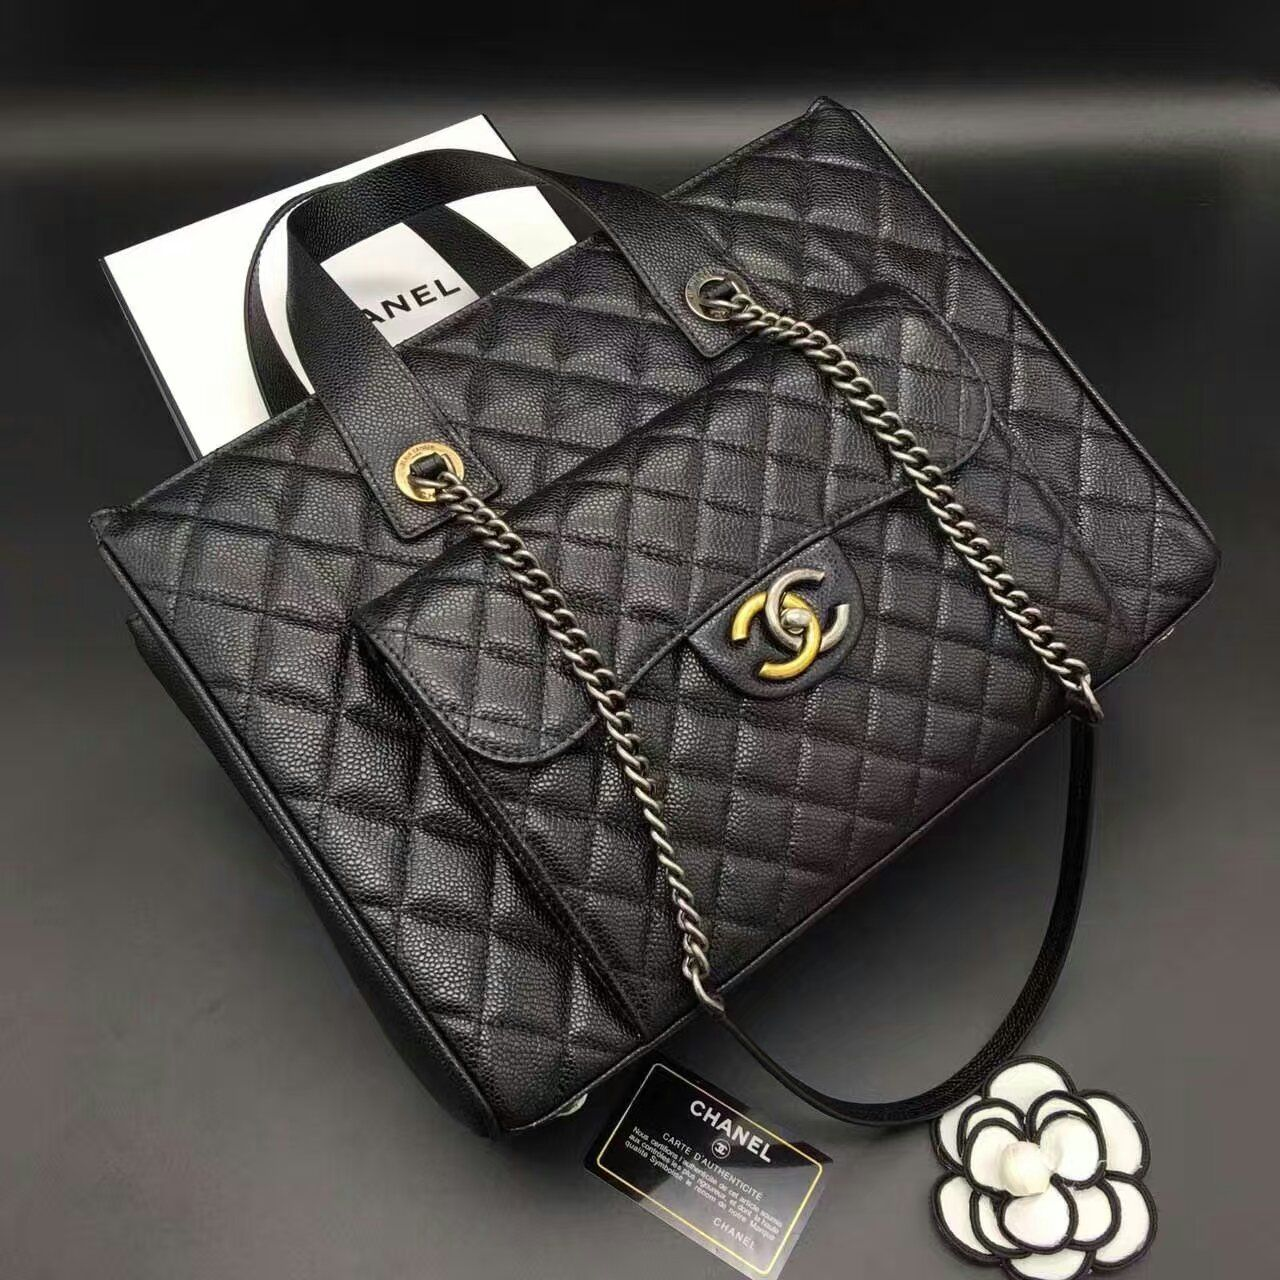 Chanel A98557 Black Grained Calfskin Quilted Large Shopping Bag with Front  Pocket Whatsapp +8615817091613 for more pics and other payment options. 9e3a826aafb03